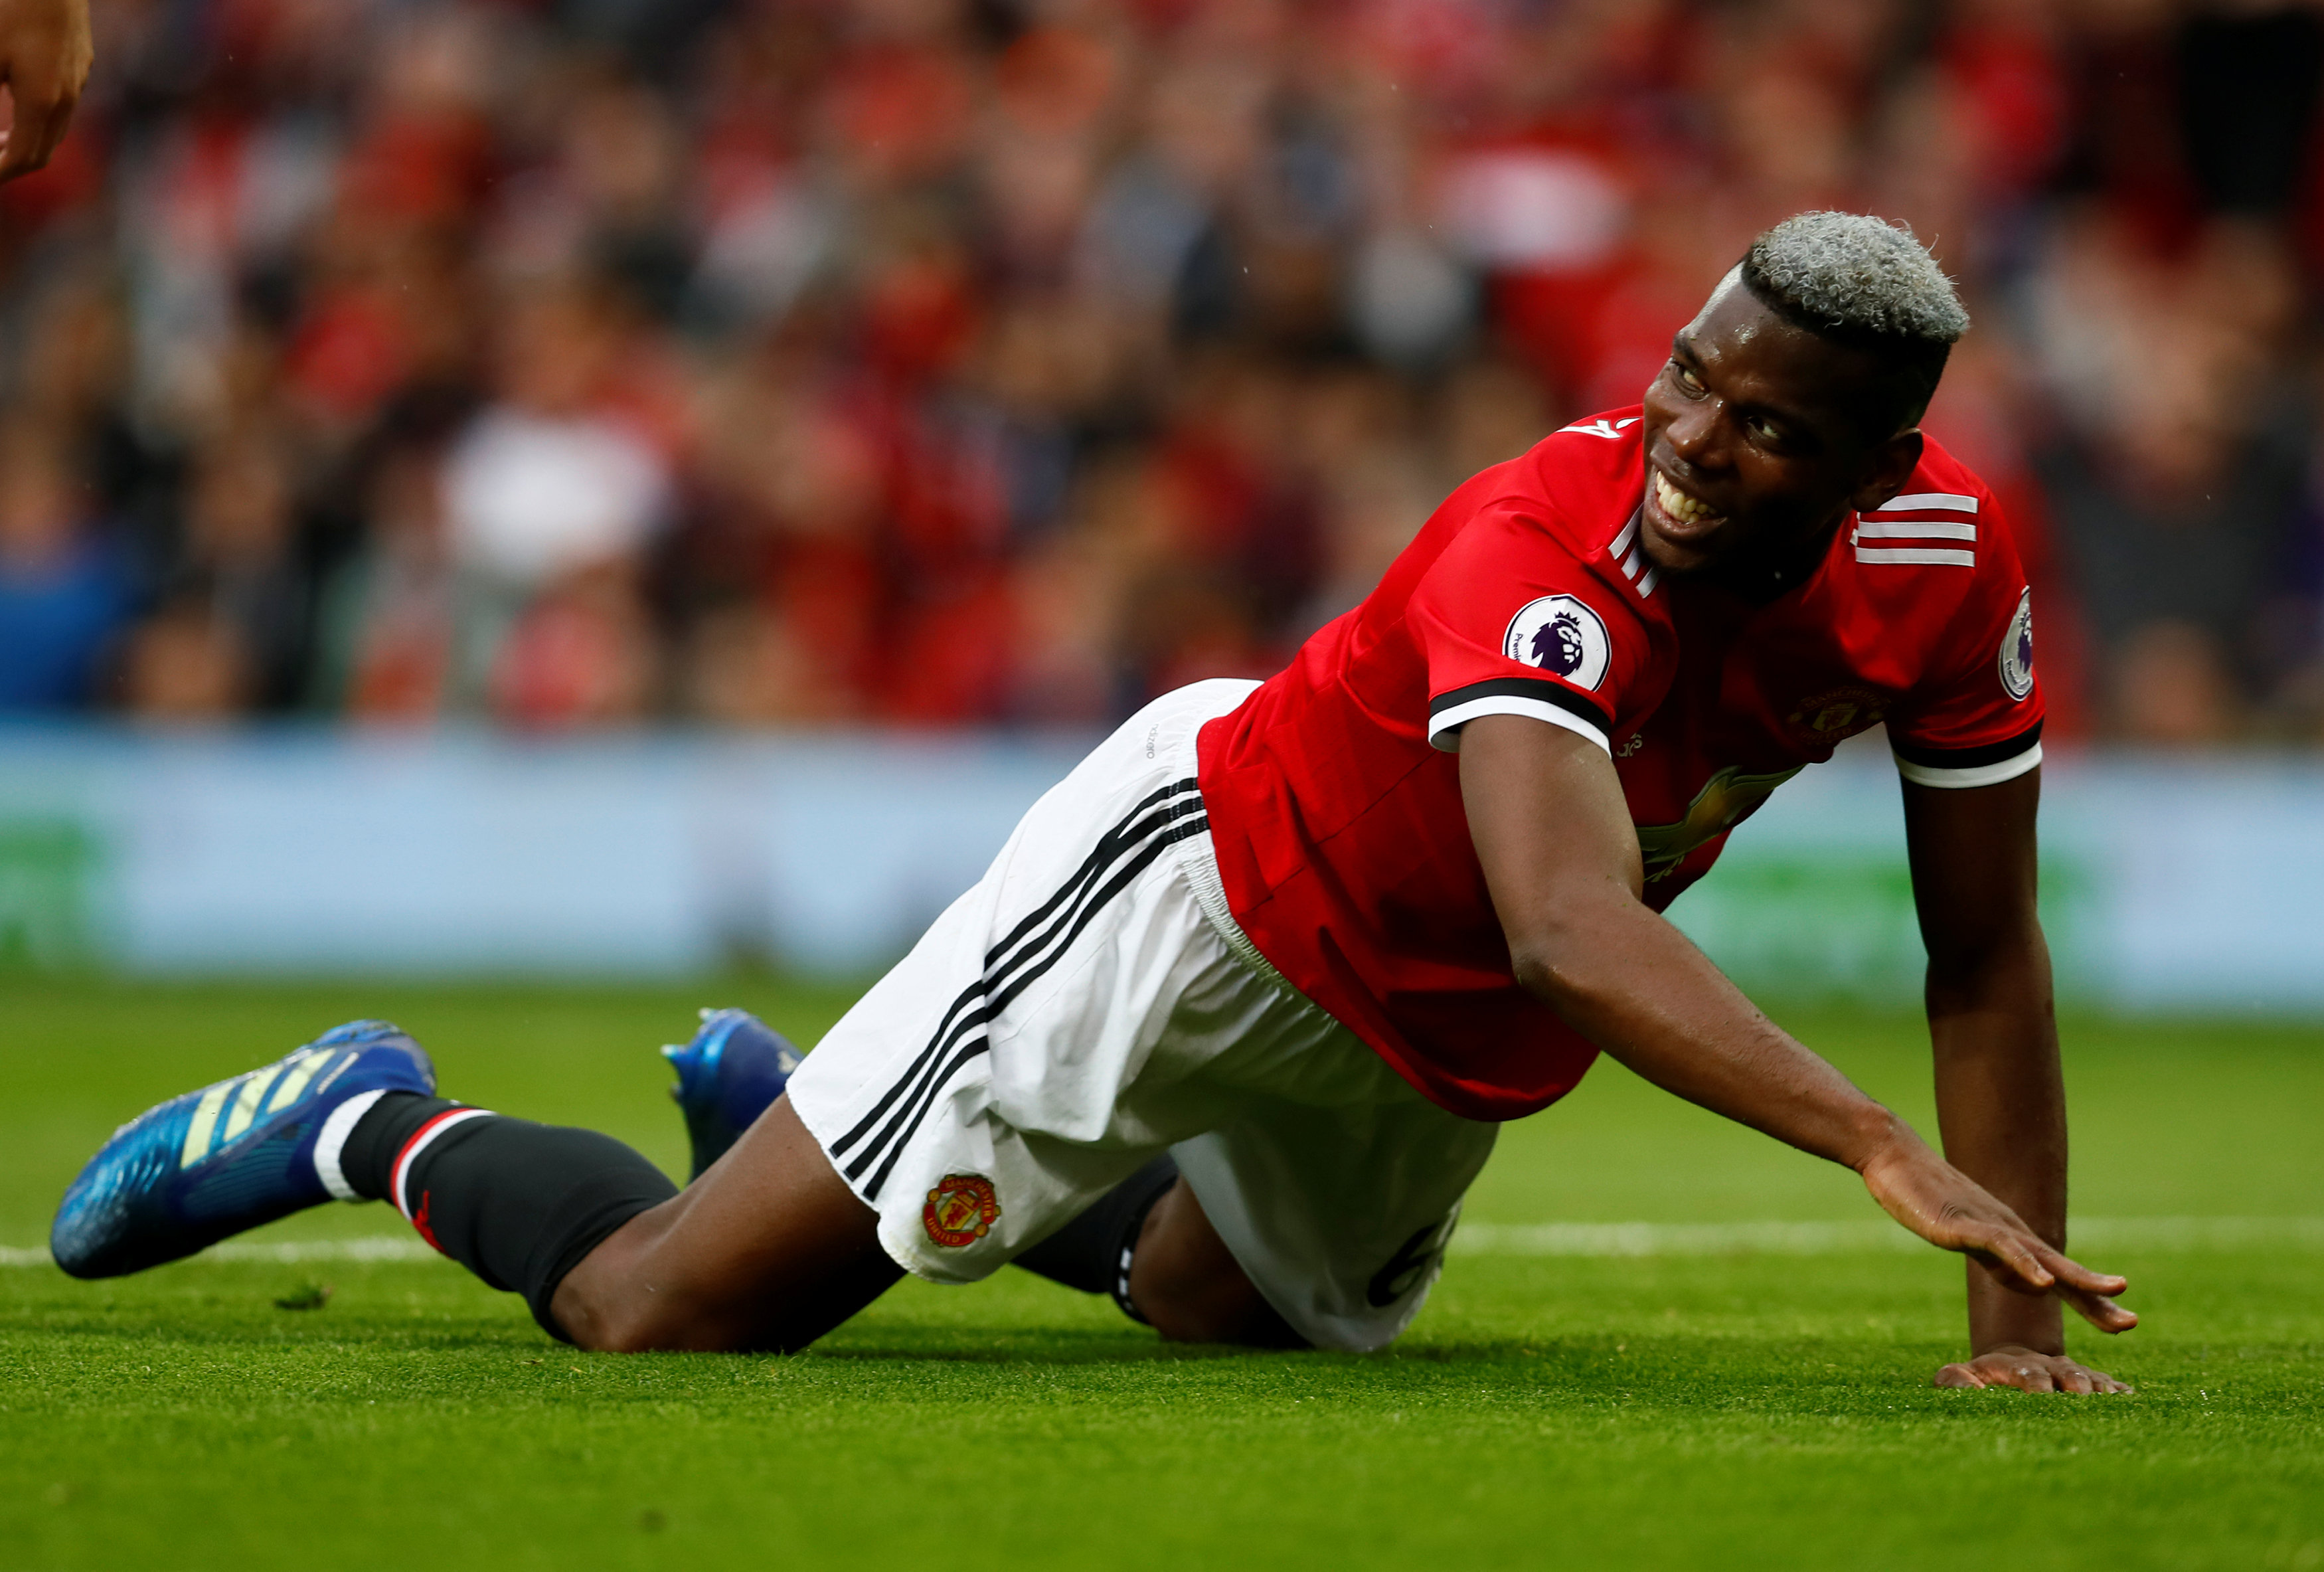 Manchester United vs Tottenham: Injury news and predicted starting XI